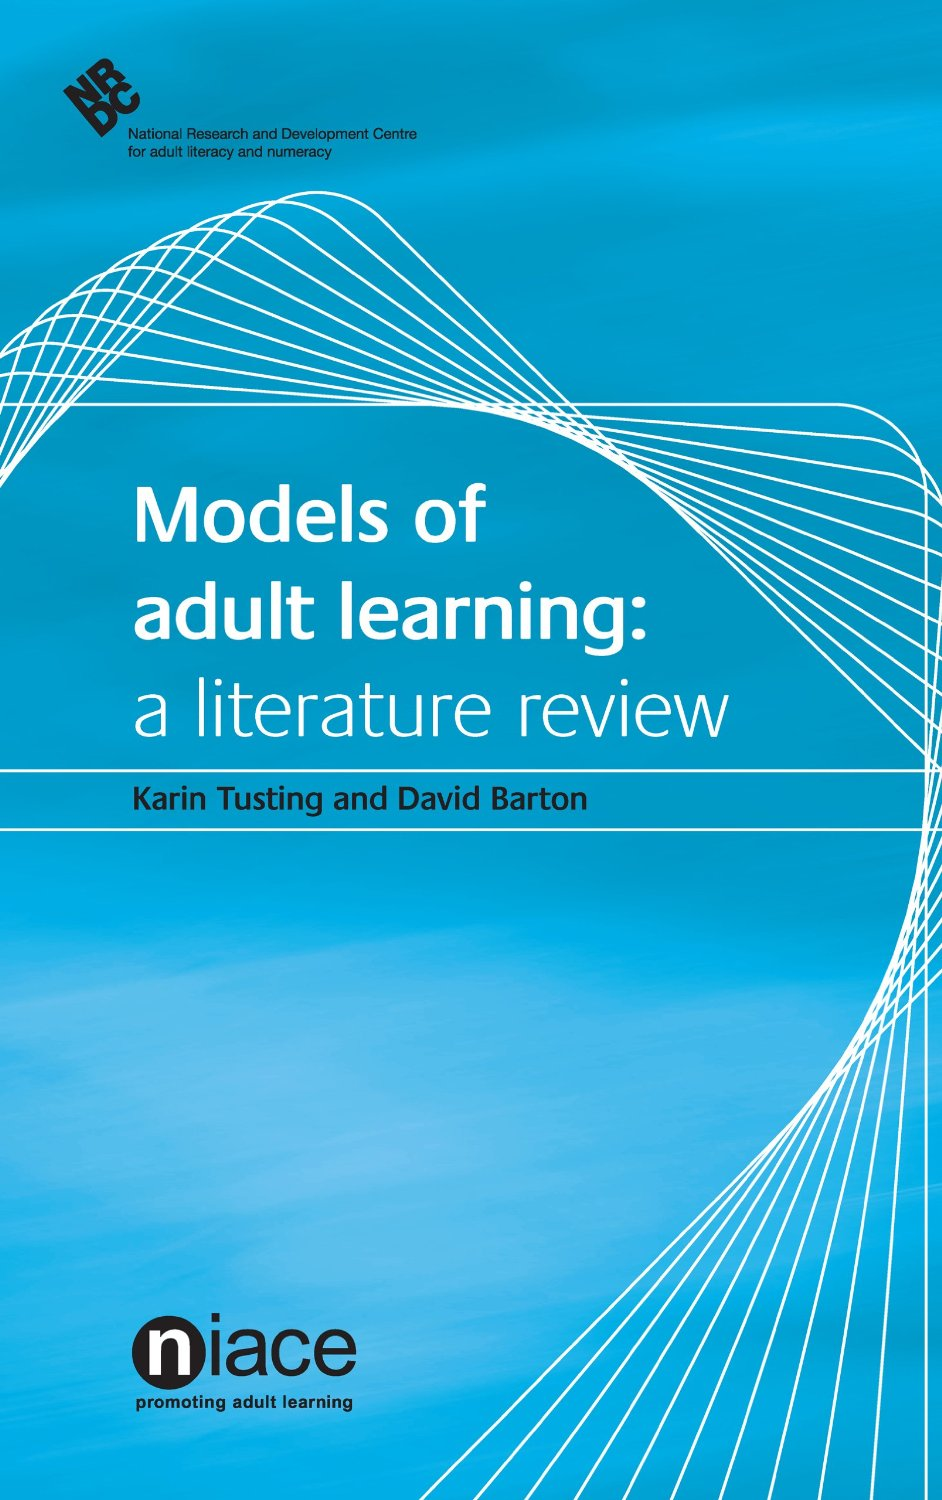 Models of Adult Learning: A Literature Review, NRDC Literature Review